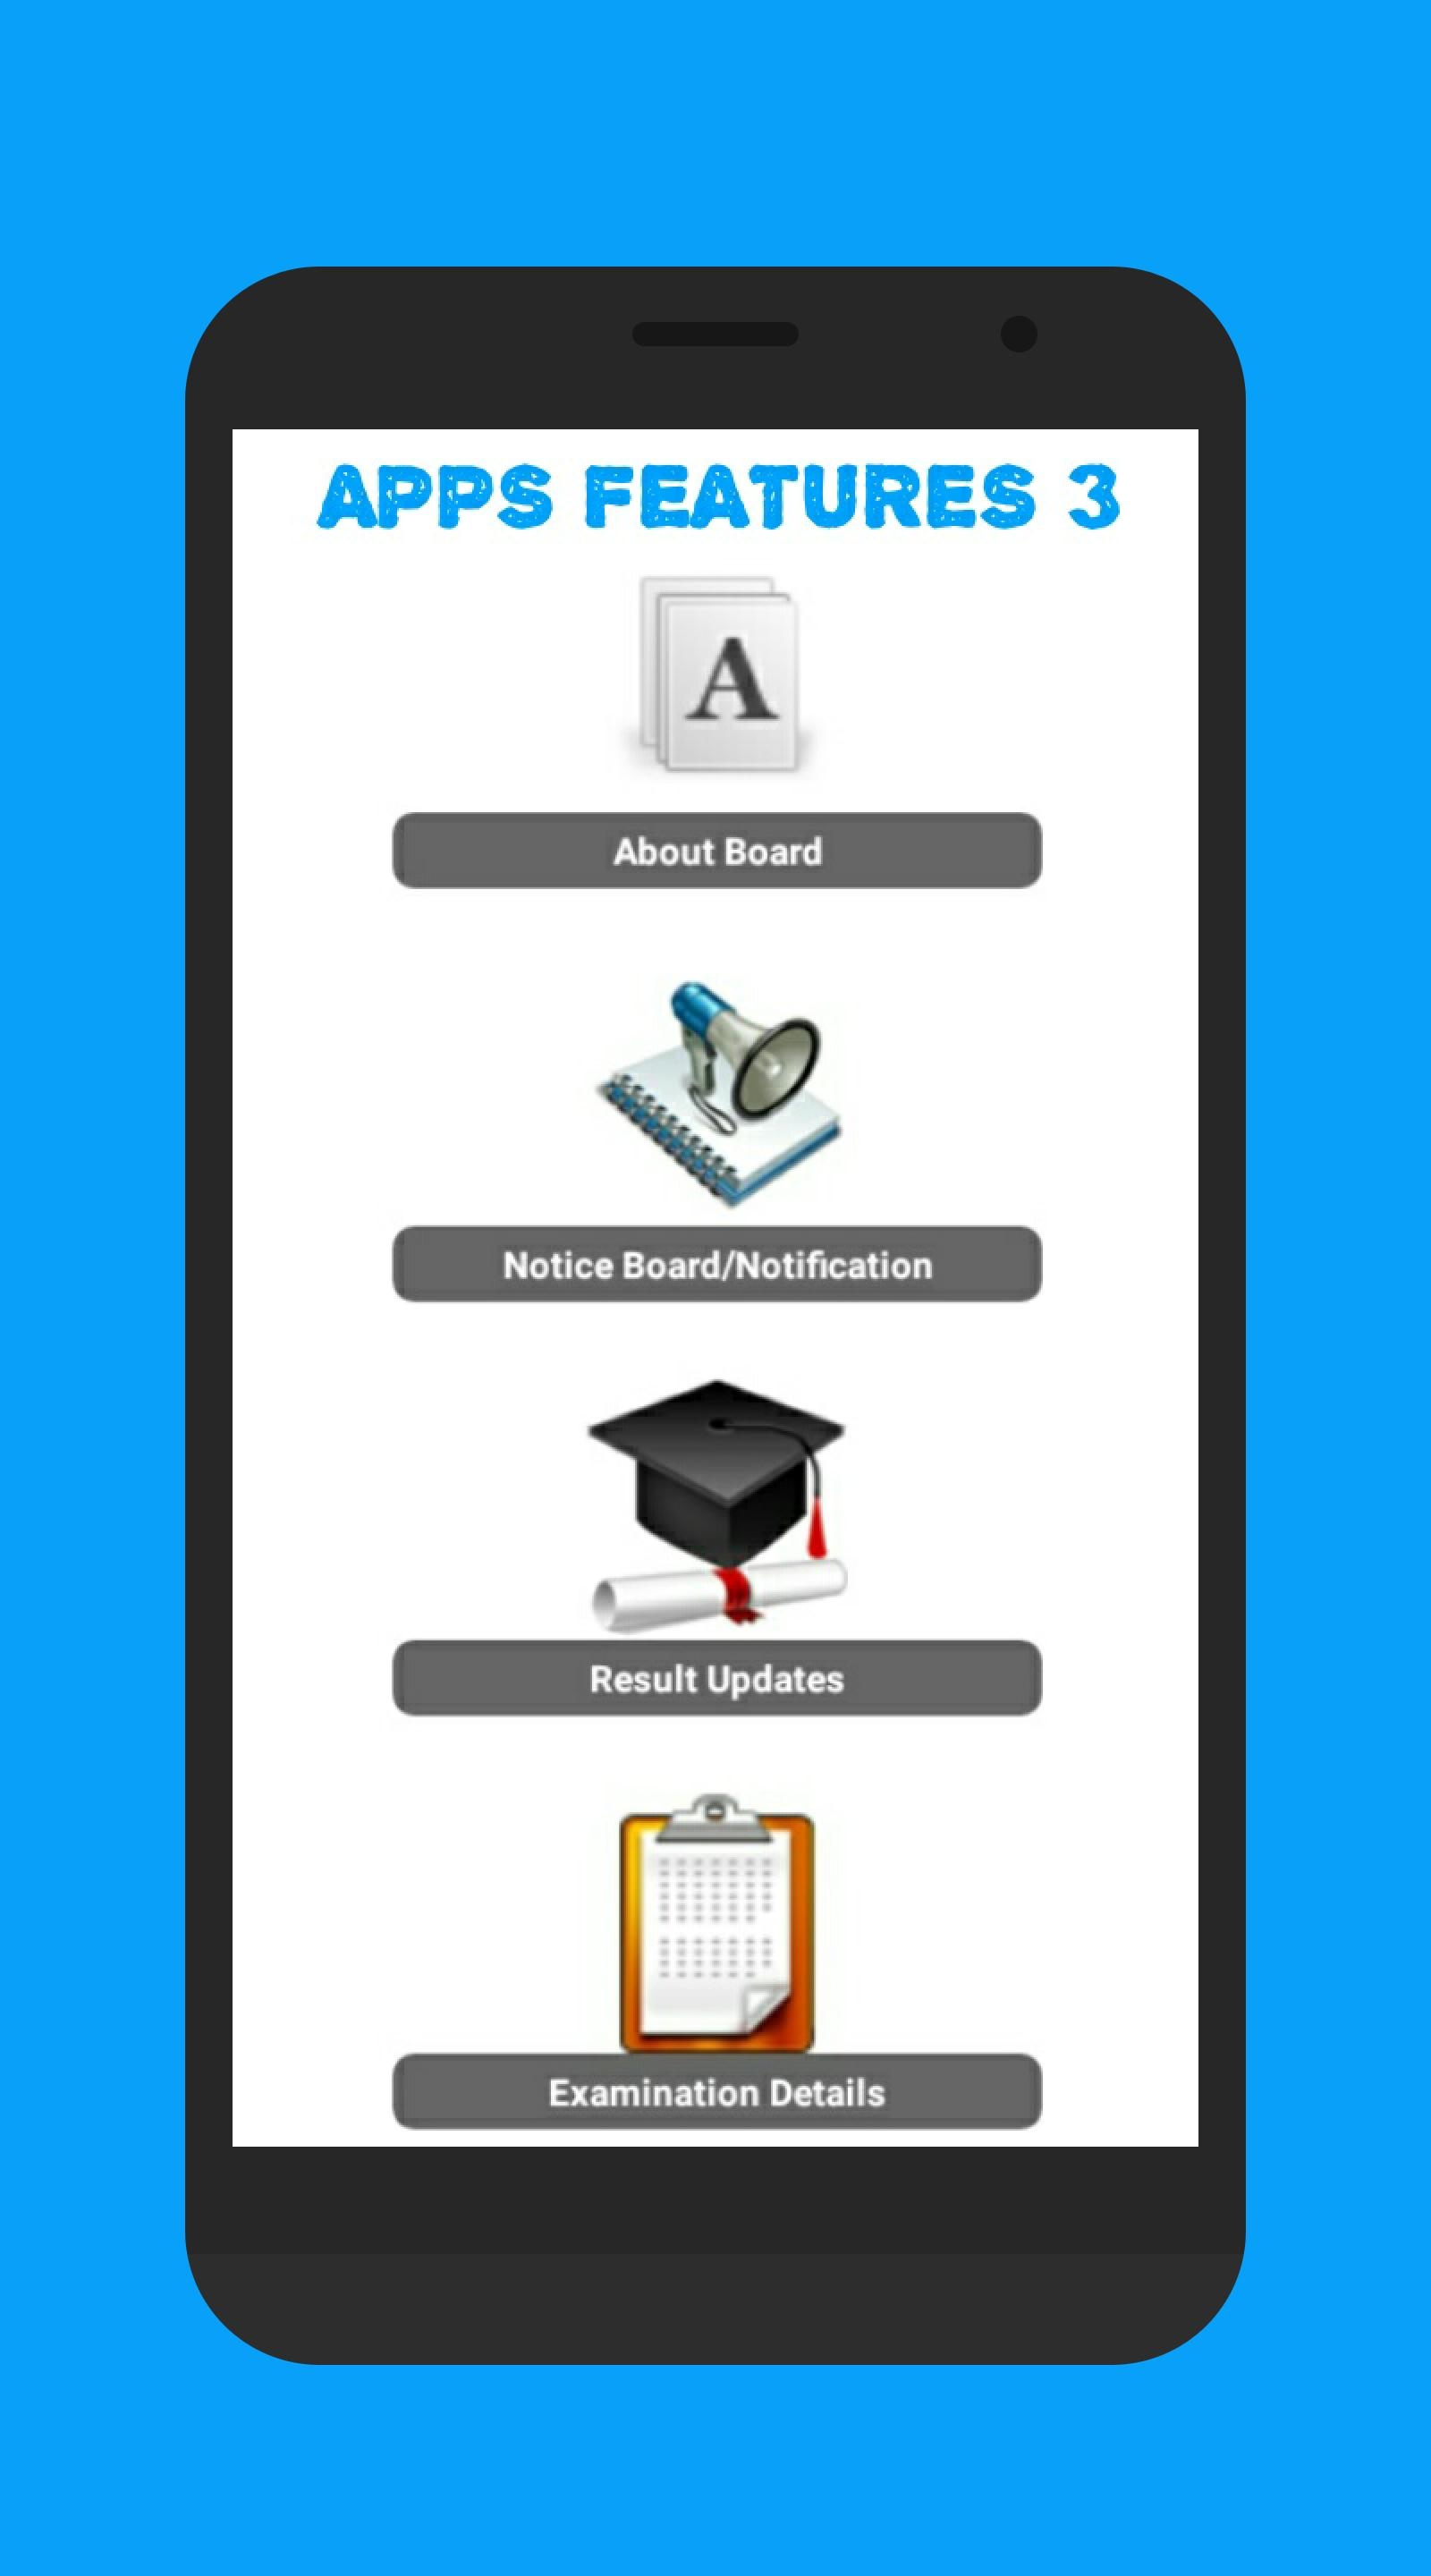 BIHAR BOARD RESULTS & NOTICE for Android - APK Download